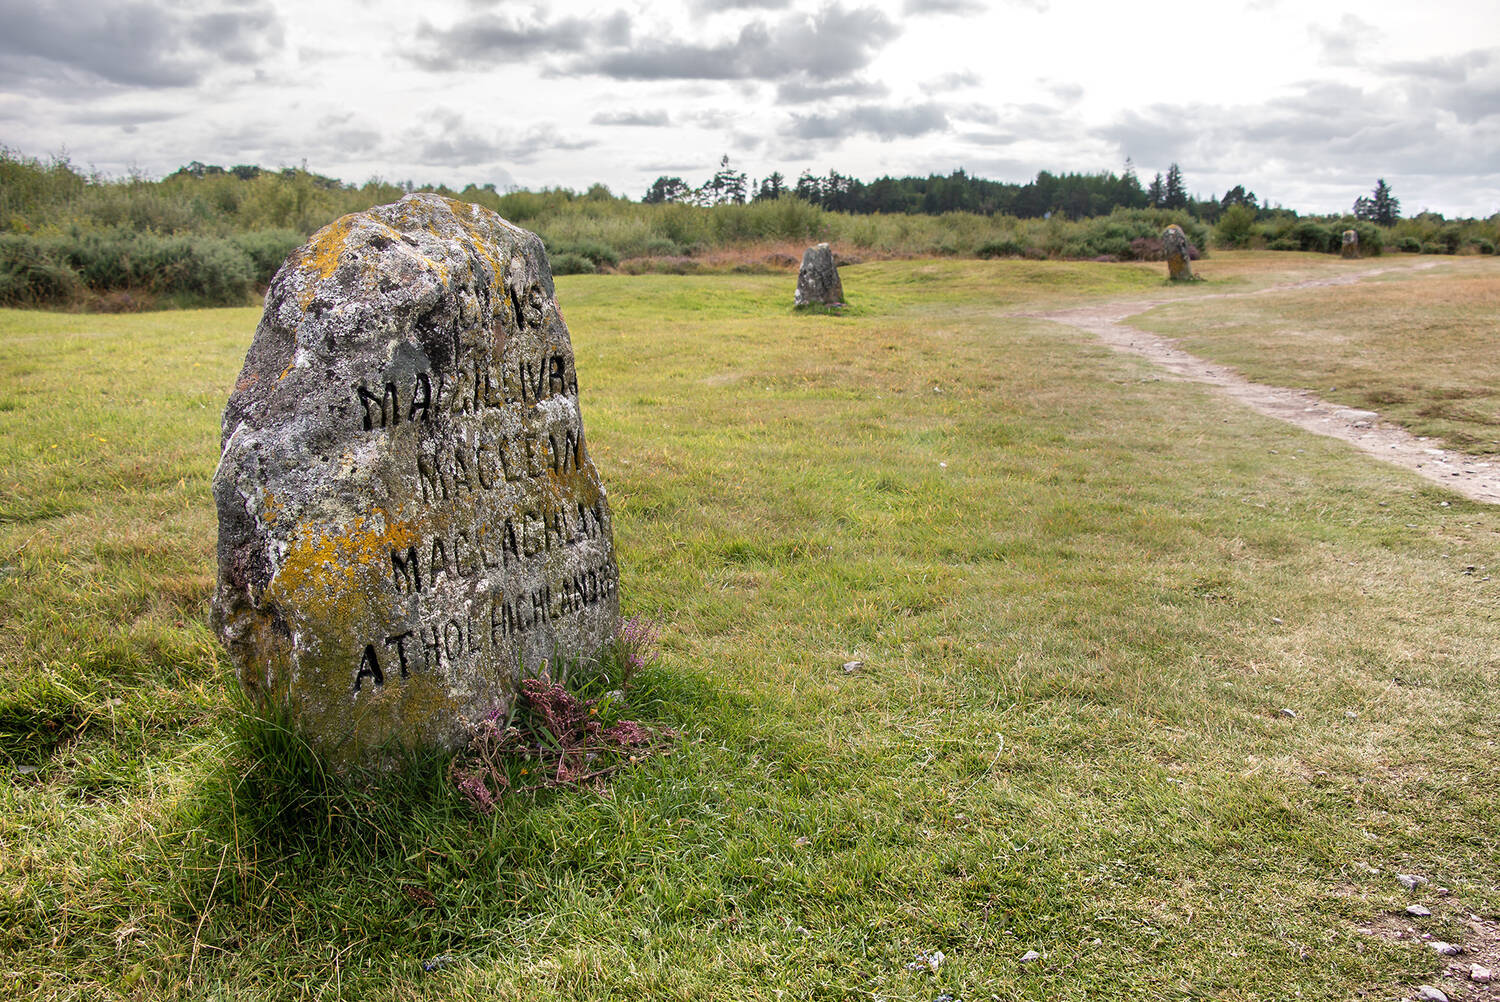 A stone marking the graves of several clans stands beside a narrow path on a field. Heather has been laid at the base. Several other grave markers can be seen in the background.